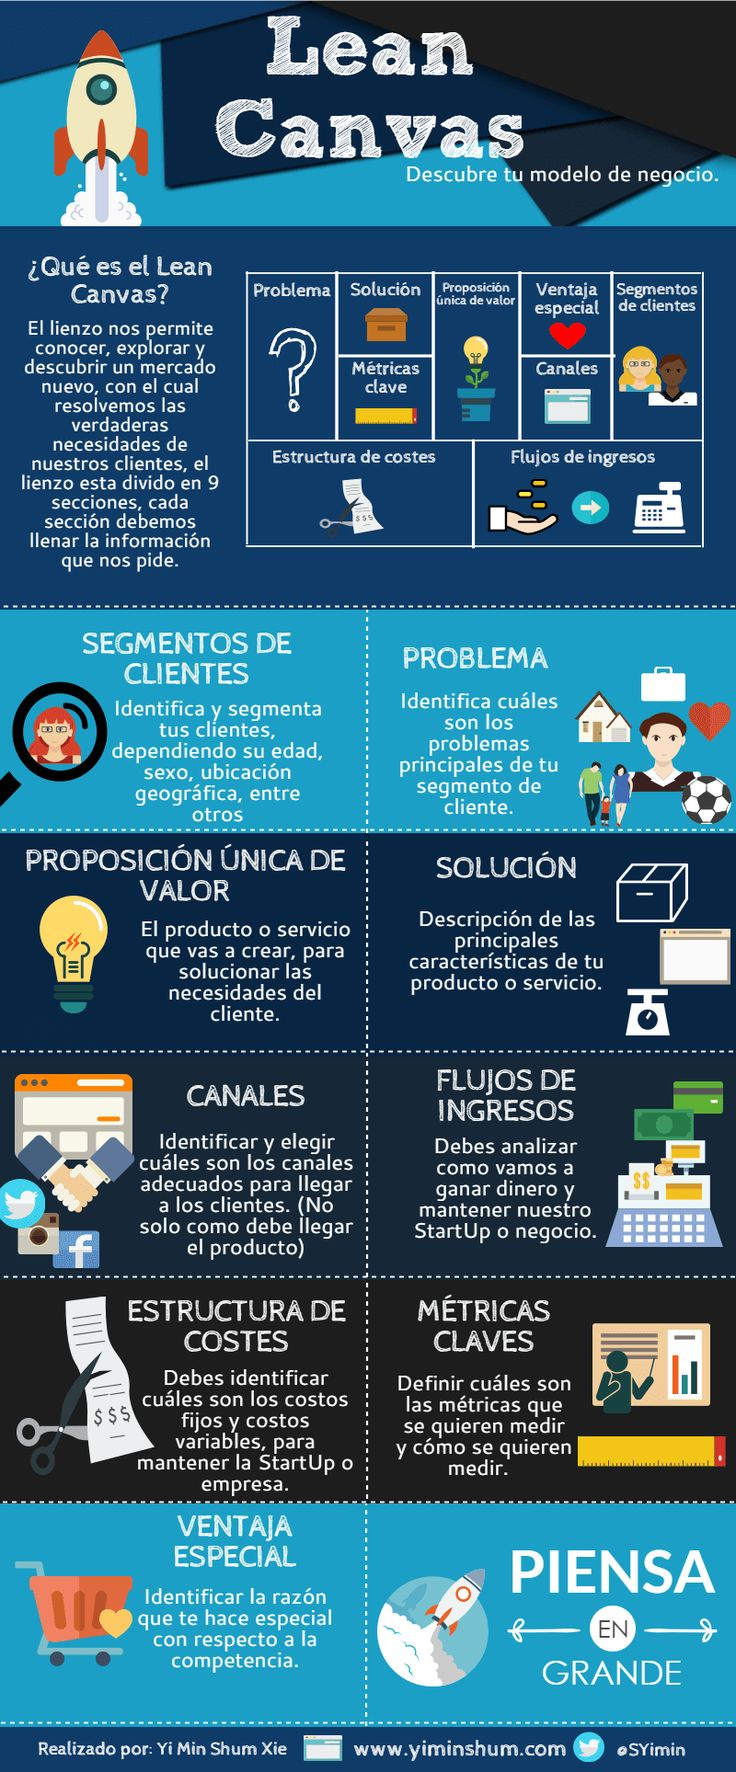 Modelo de Negocio Lean Canvas